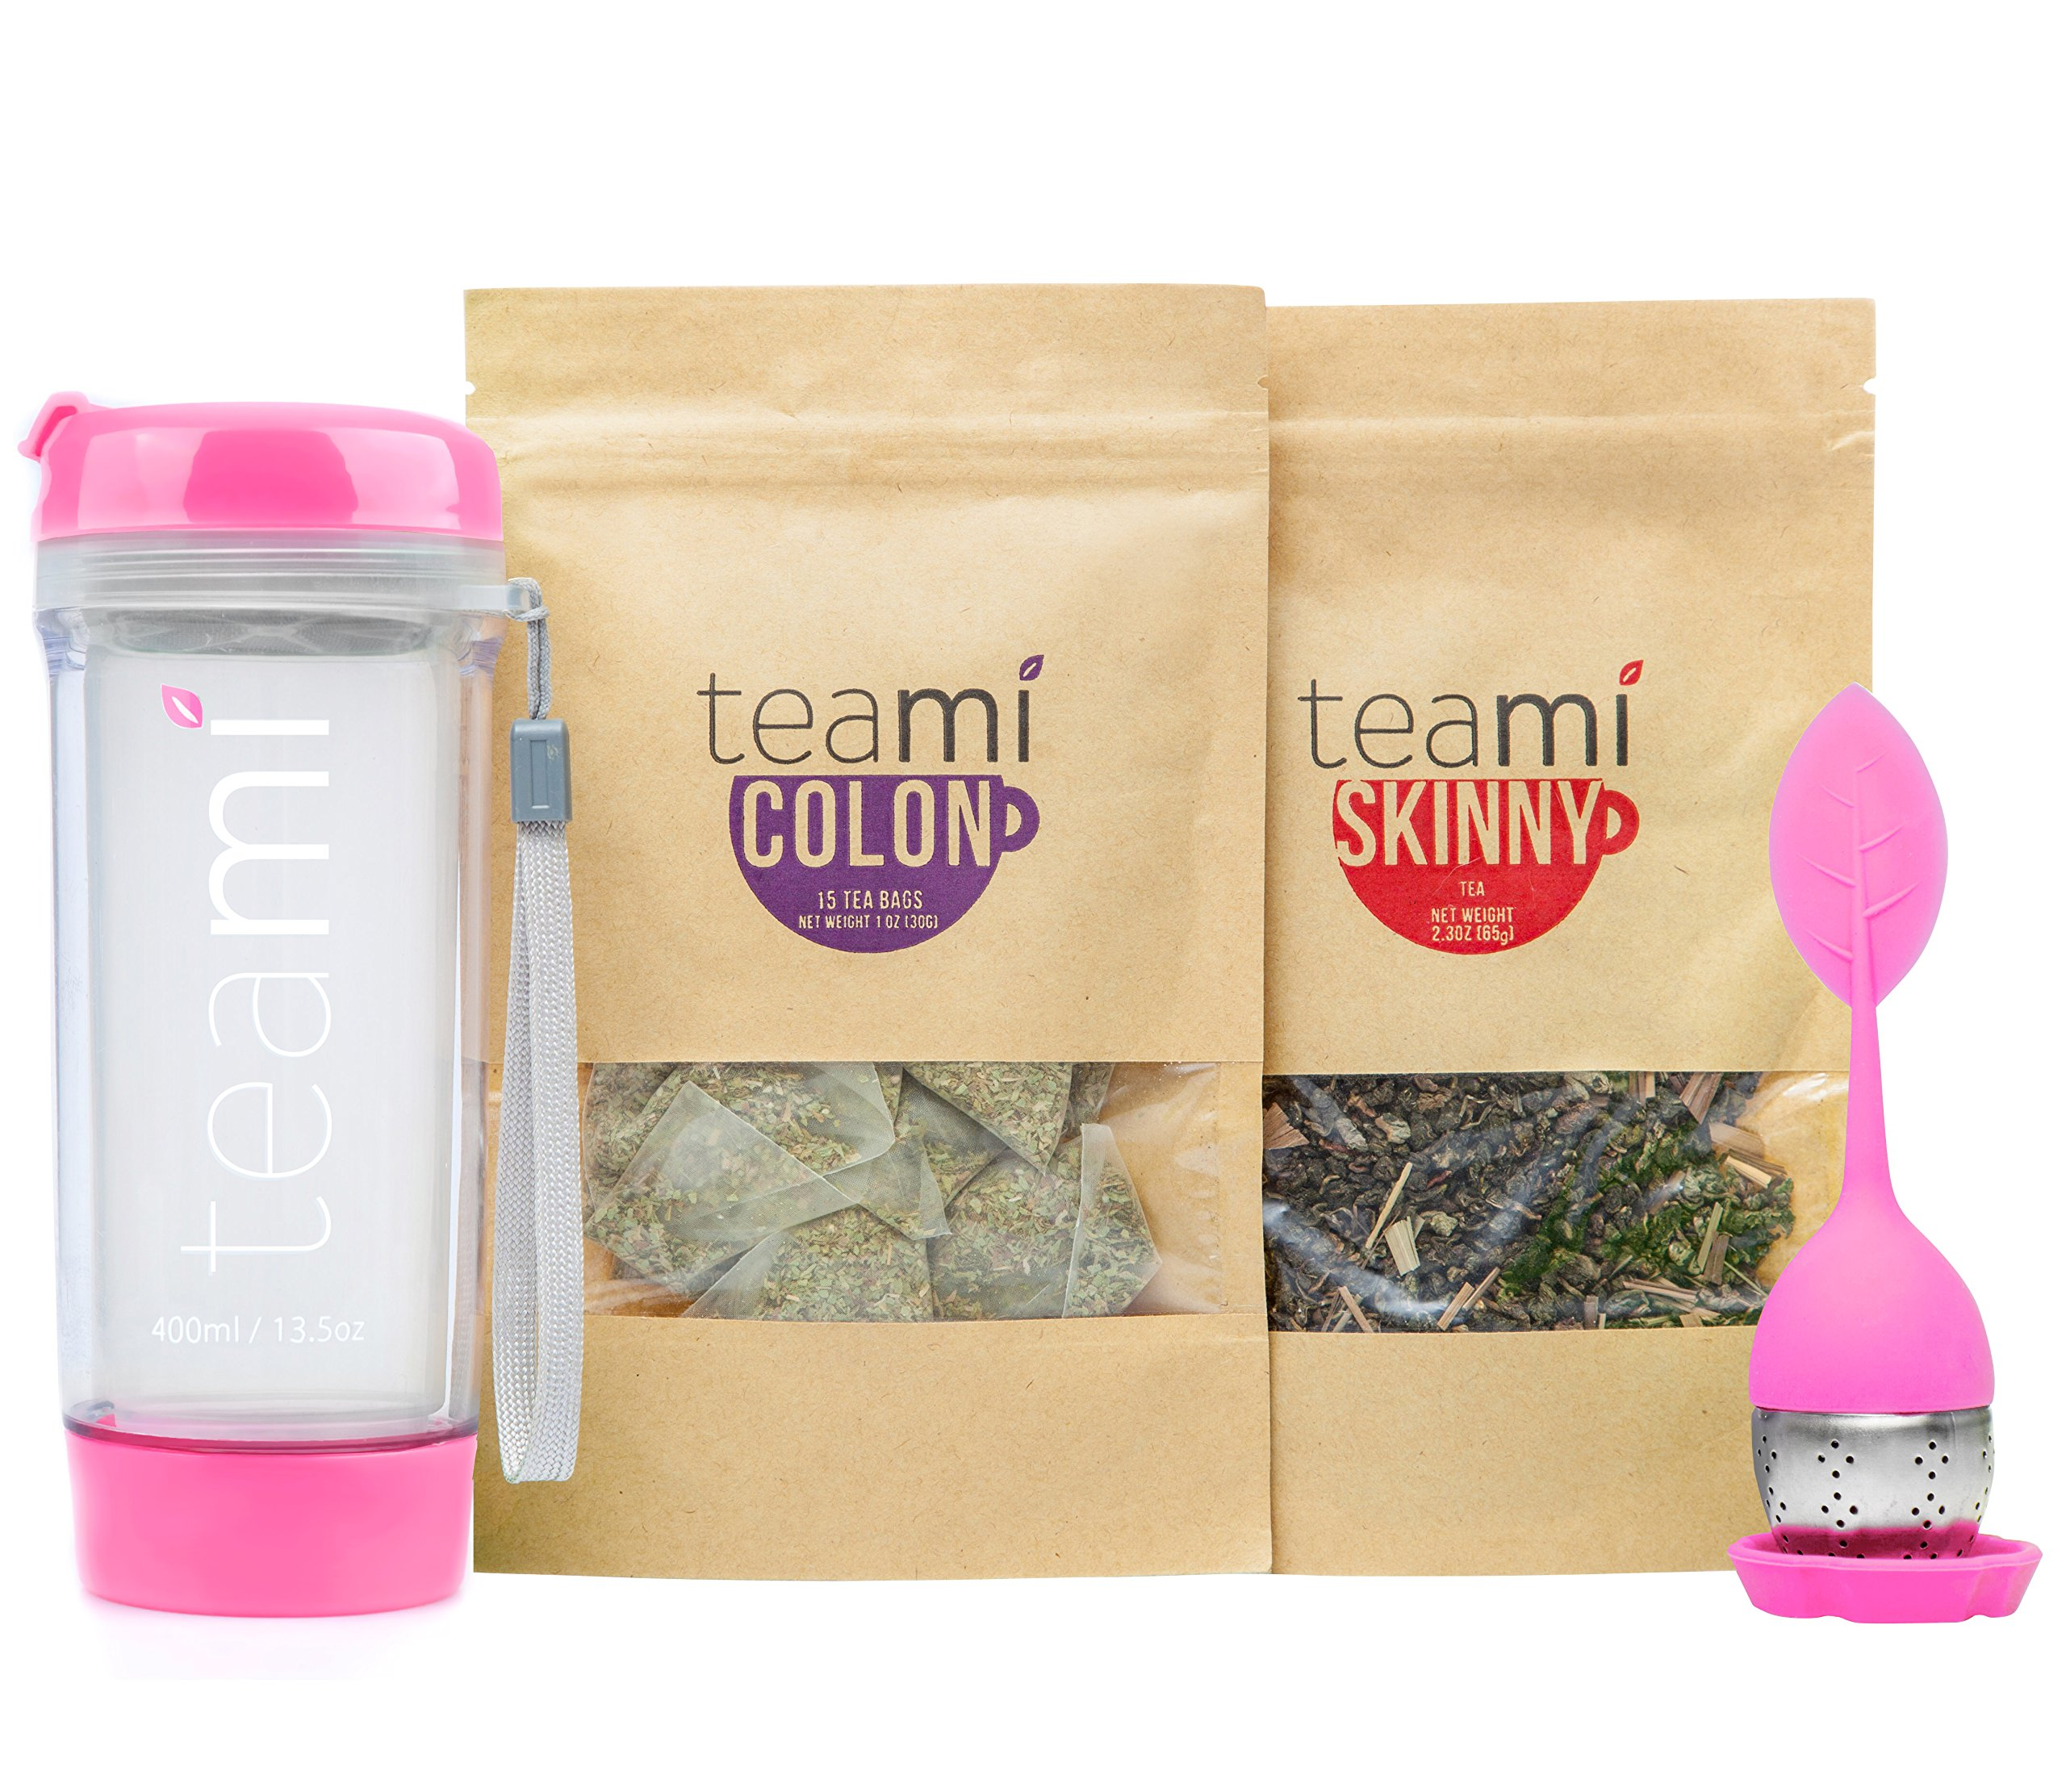 30 Day Detox Tea Kit for Teatox & Weight Loss to get that Skinny Tummy by Teami Blends | Our Best Colon Cleanse Blend to Raise Energy, Boost Metabolism, Reduce Bloating! (Pink Tumbler & Infuser)